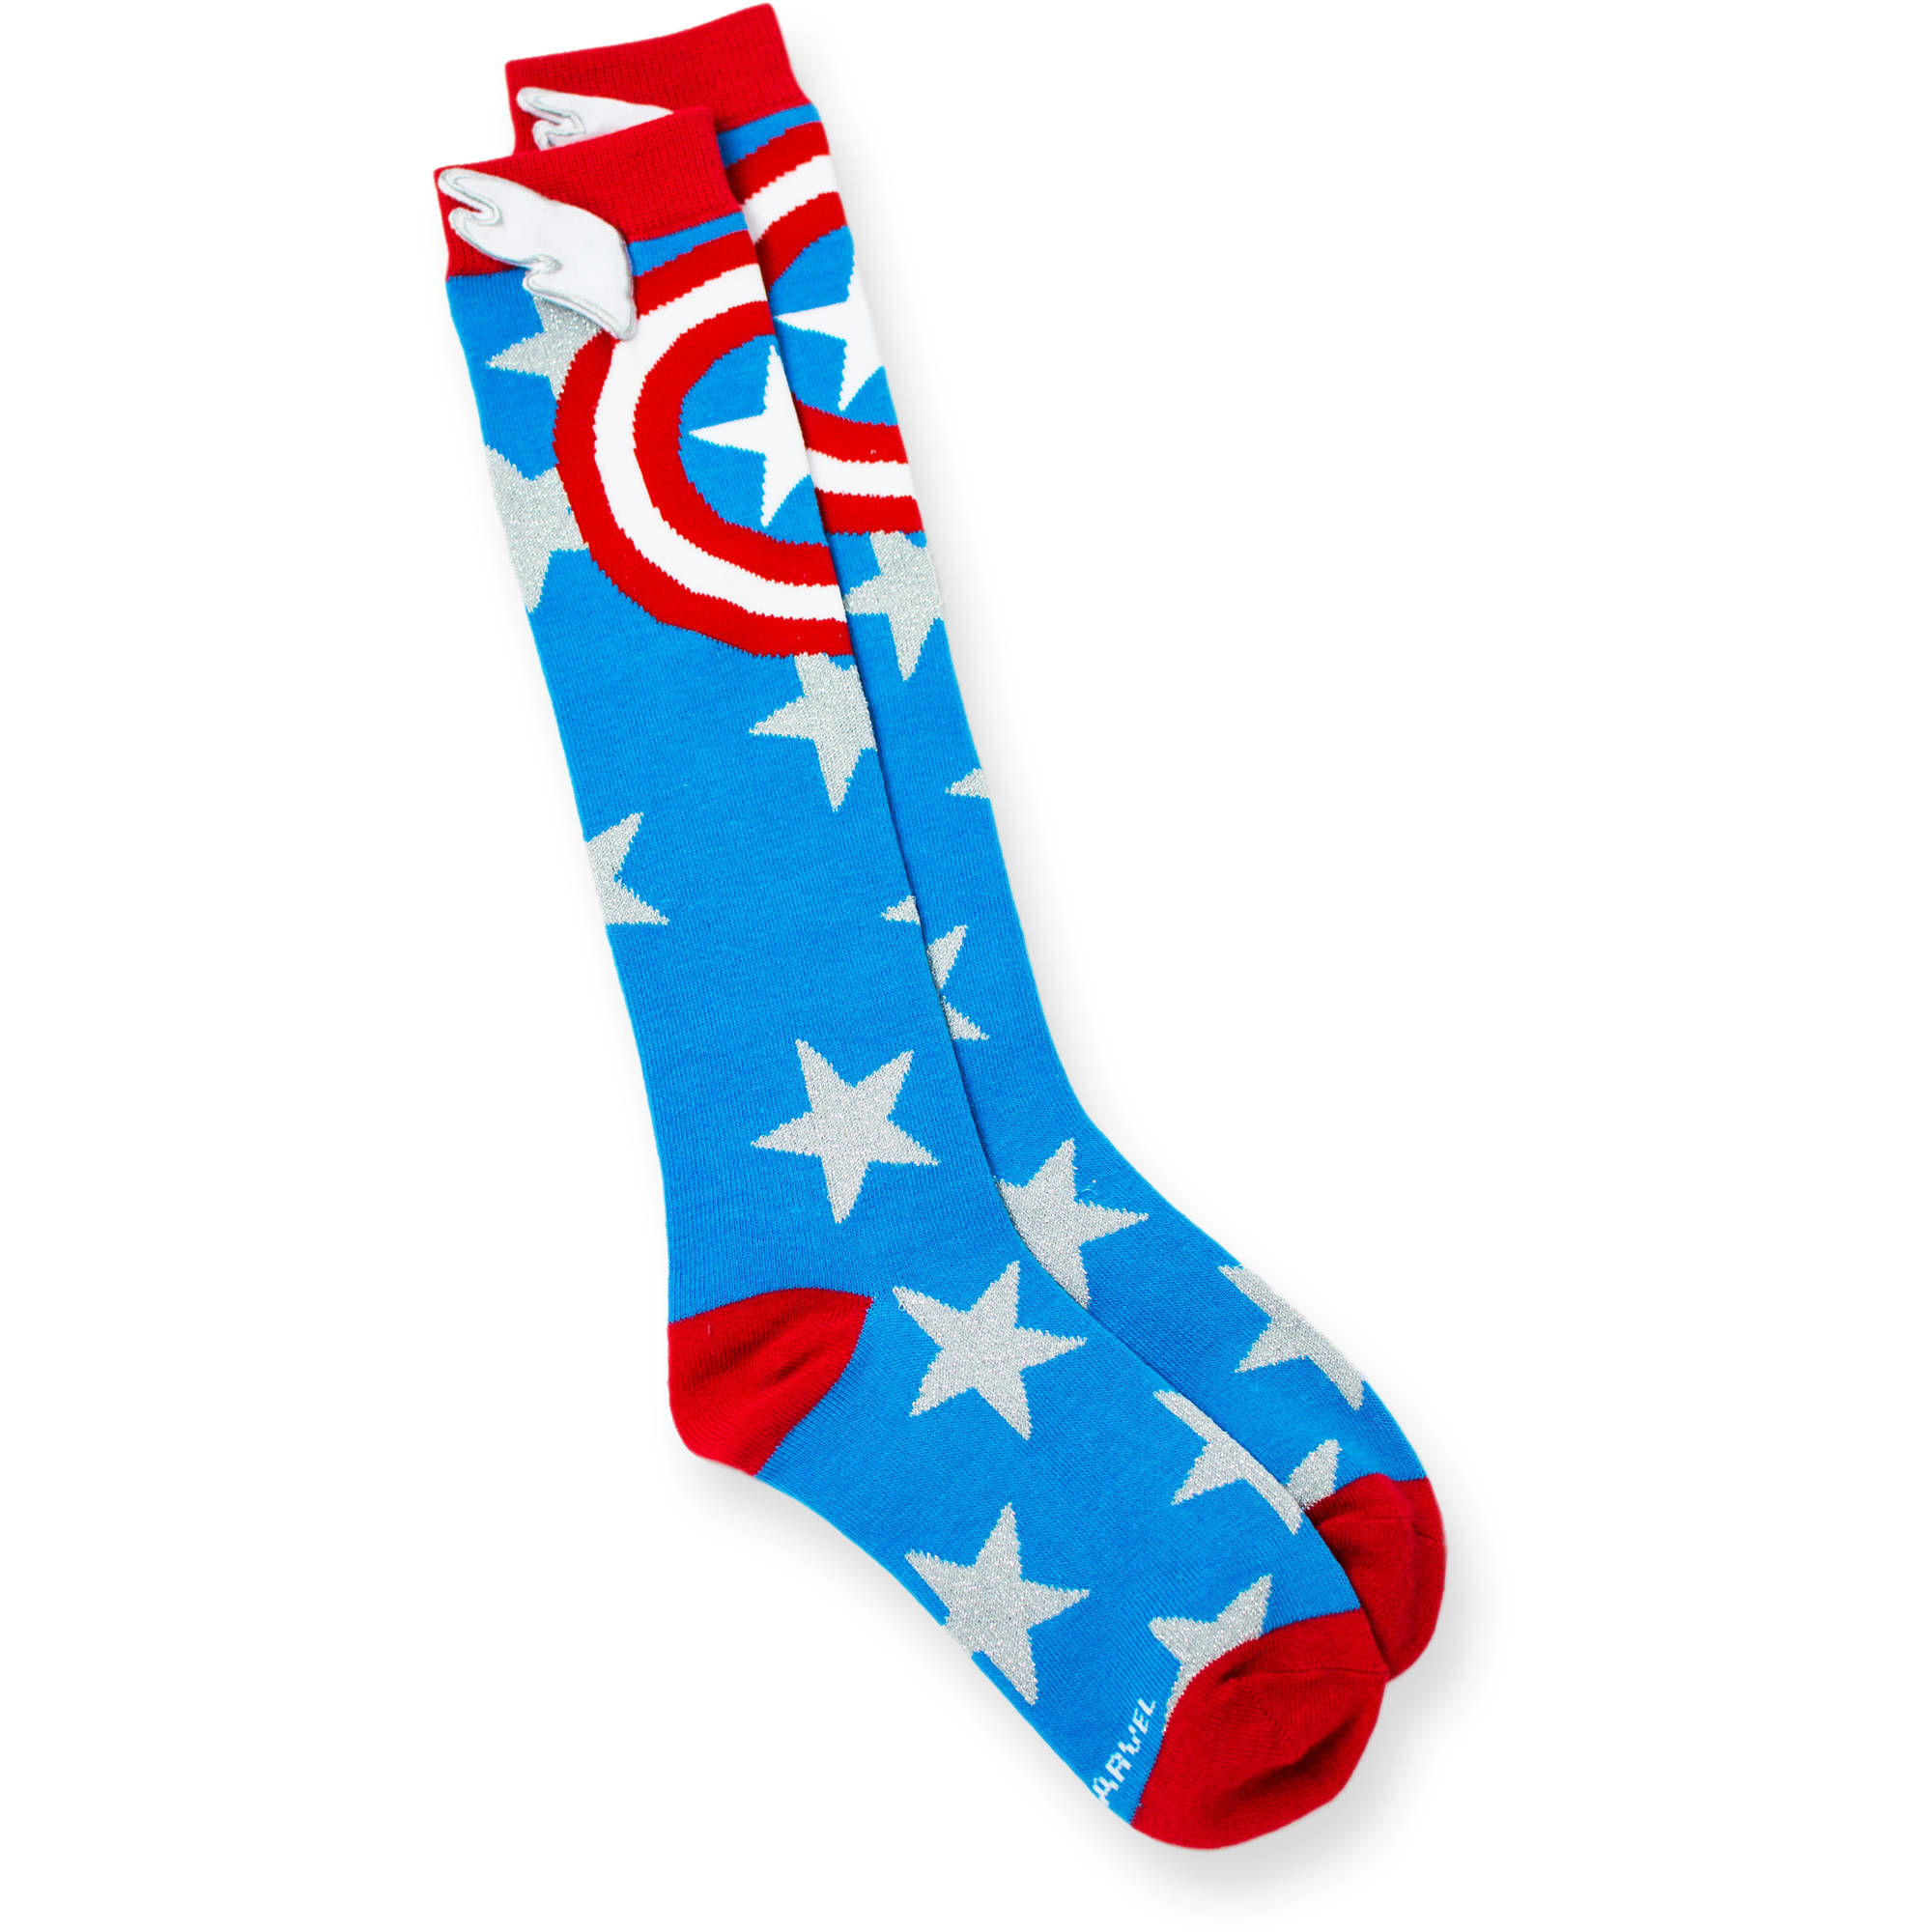 ladies marvel captain america knee high socks walmartcom - Walmart Christmas Socks